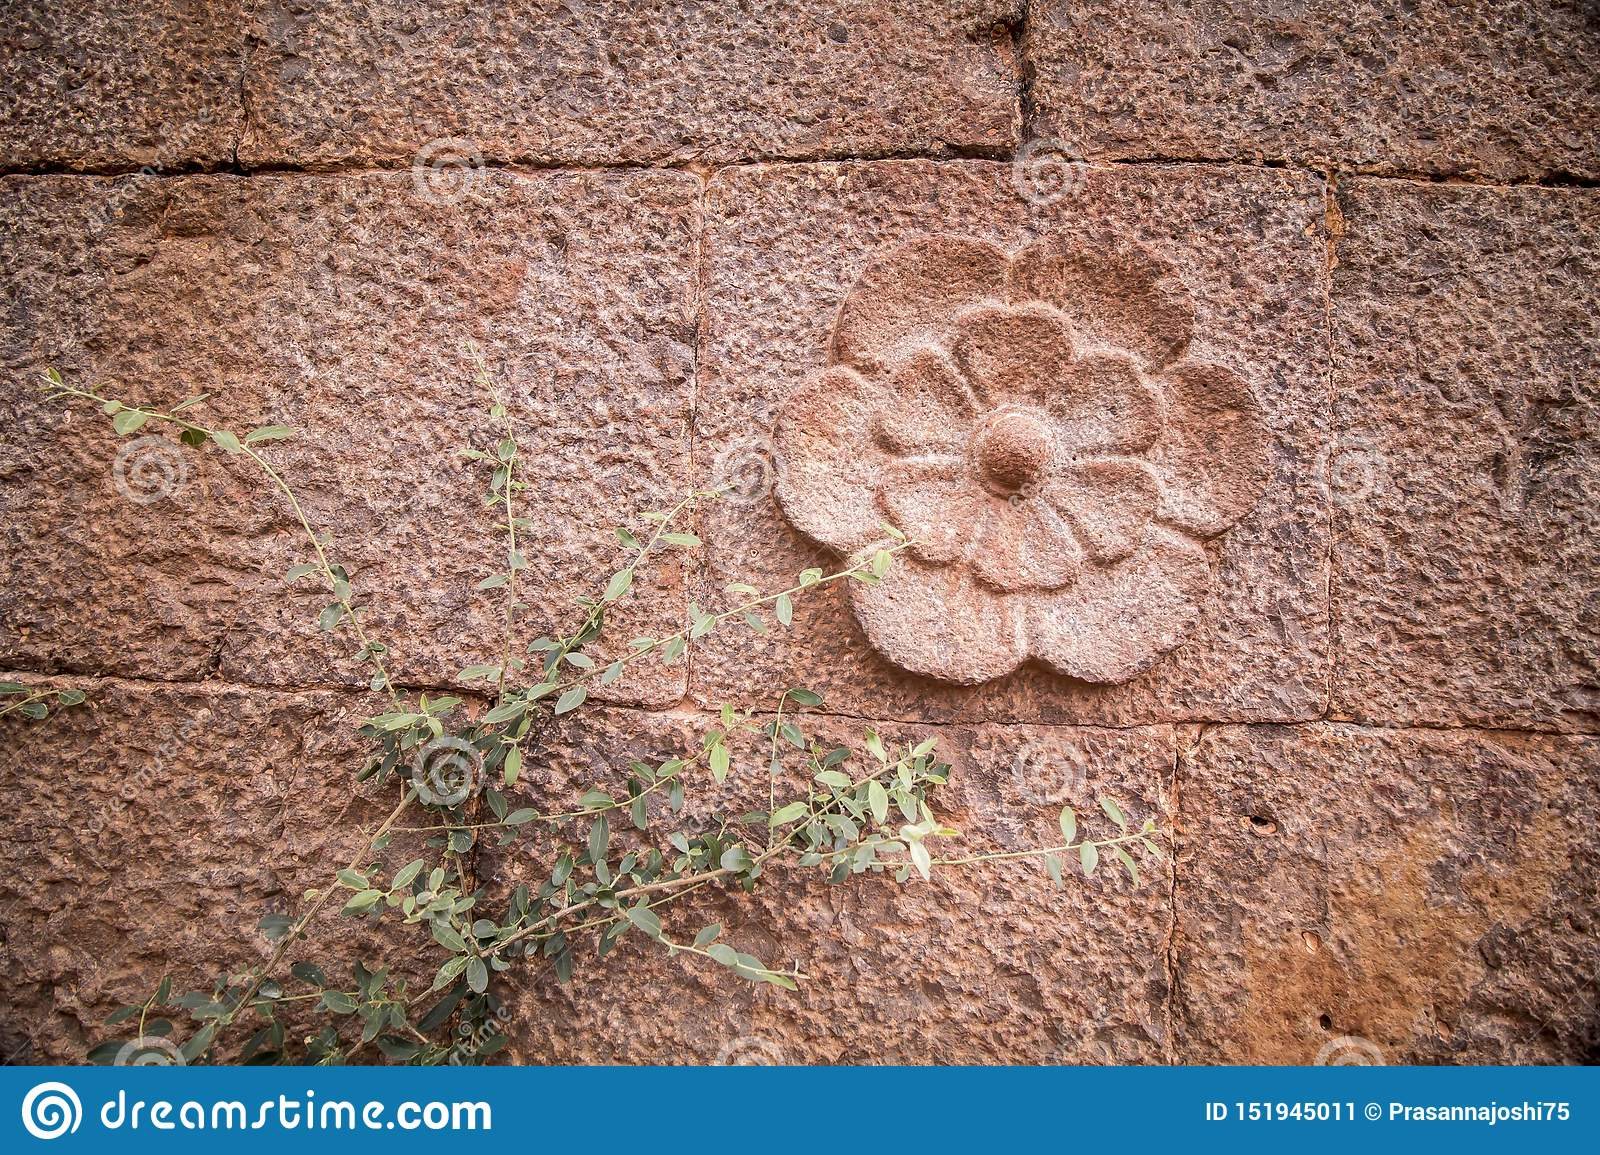 Decorative flower scalped on rock wall